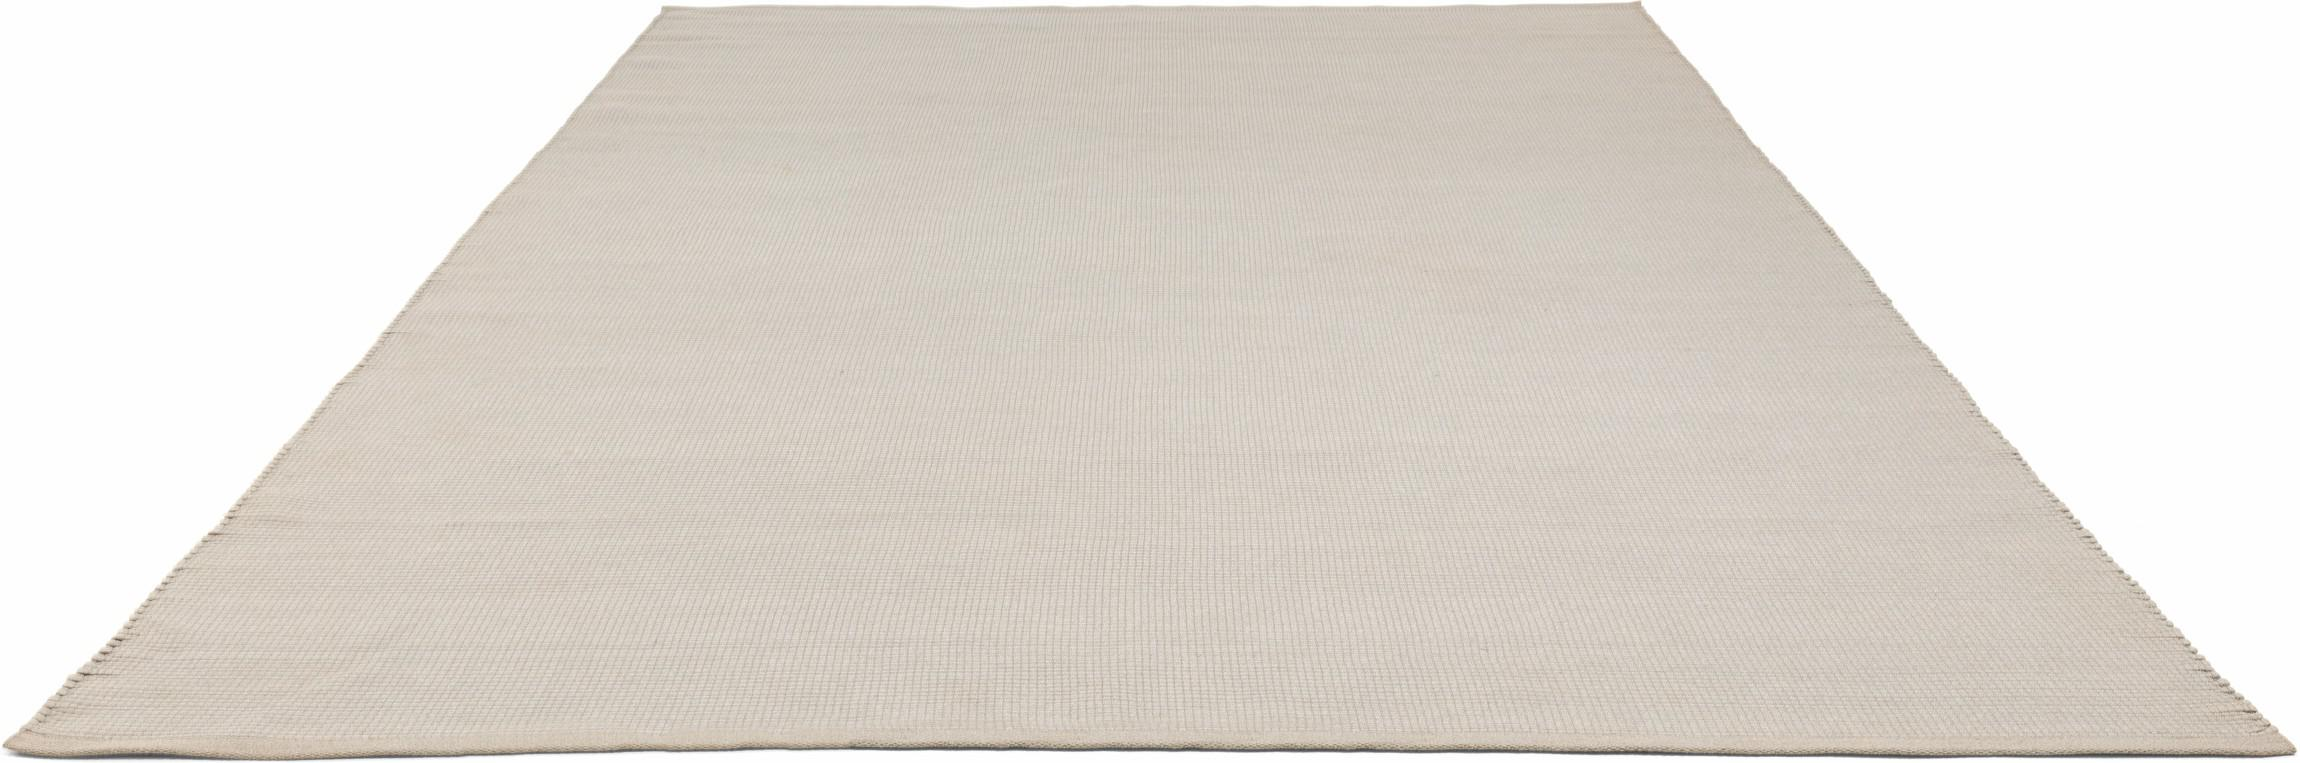 Rugs Linear 250x350 pepper